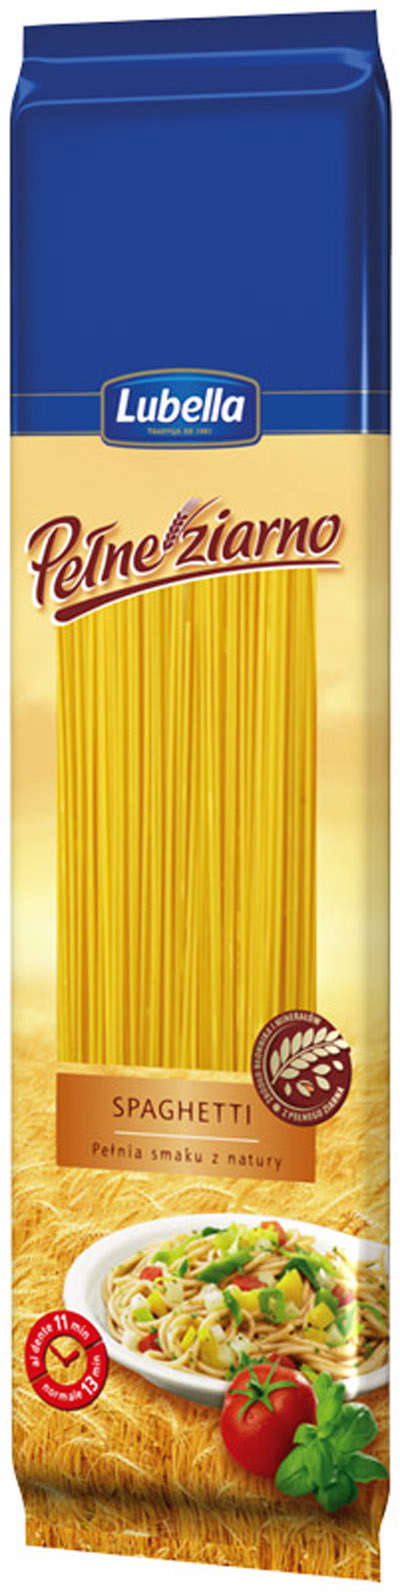 400g Whole Grain Pasta Spaghetti LUBELLA